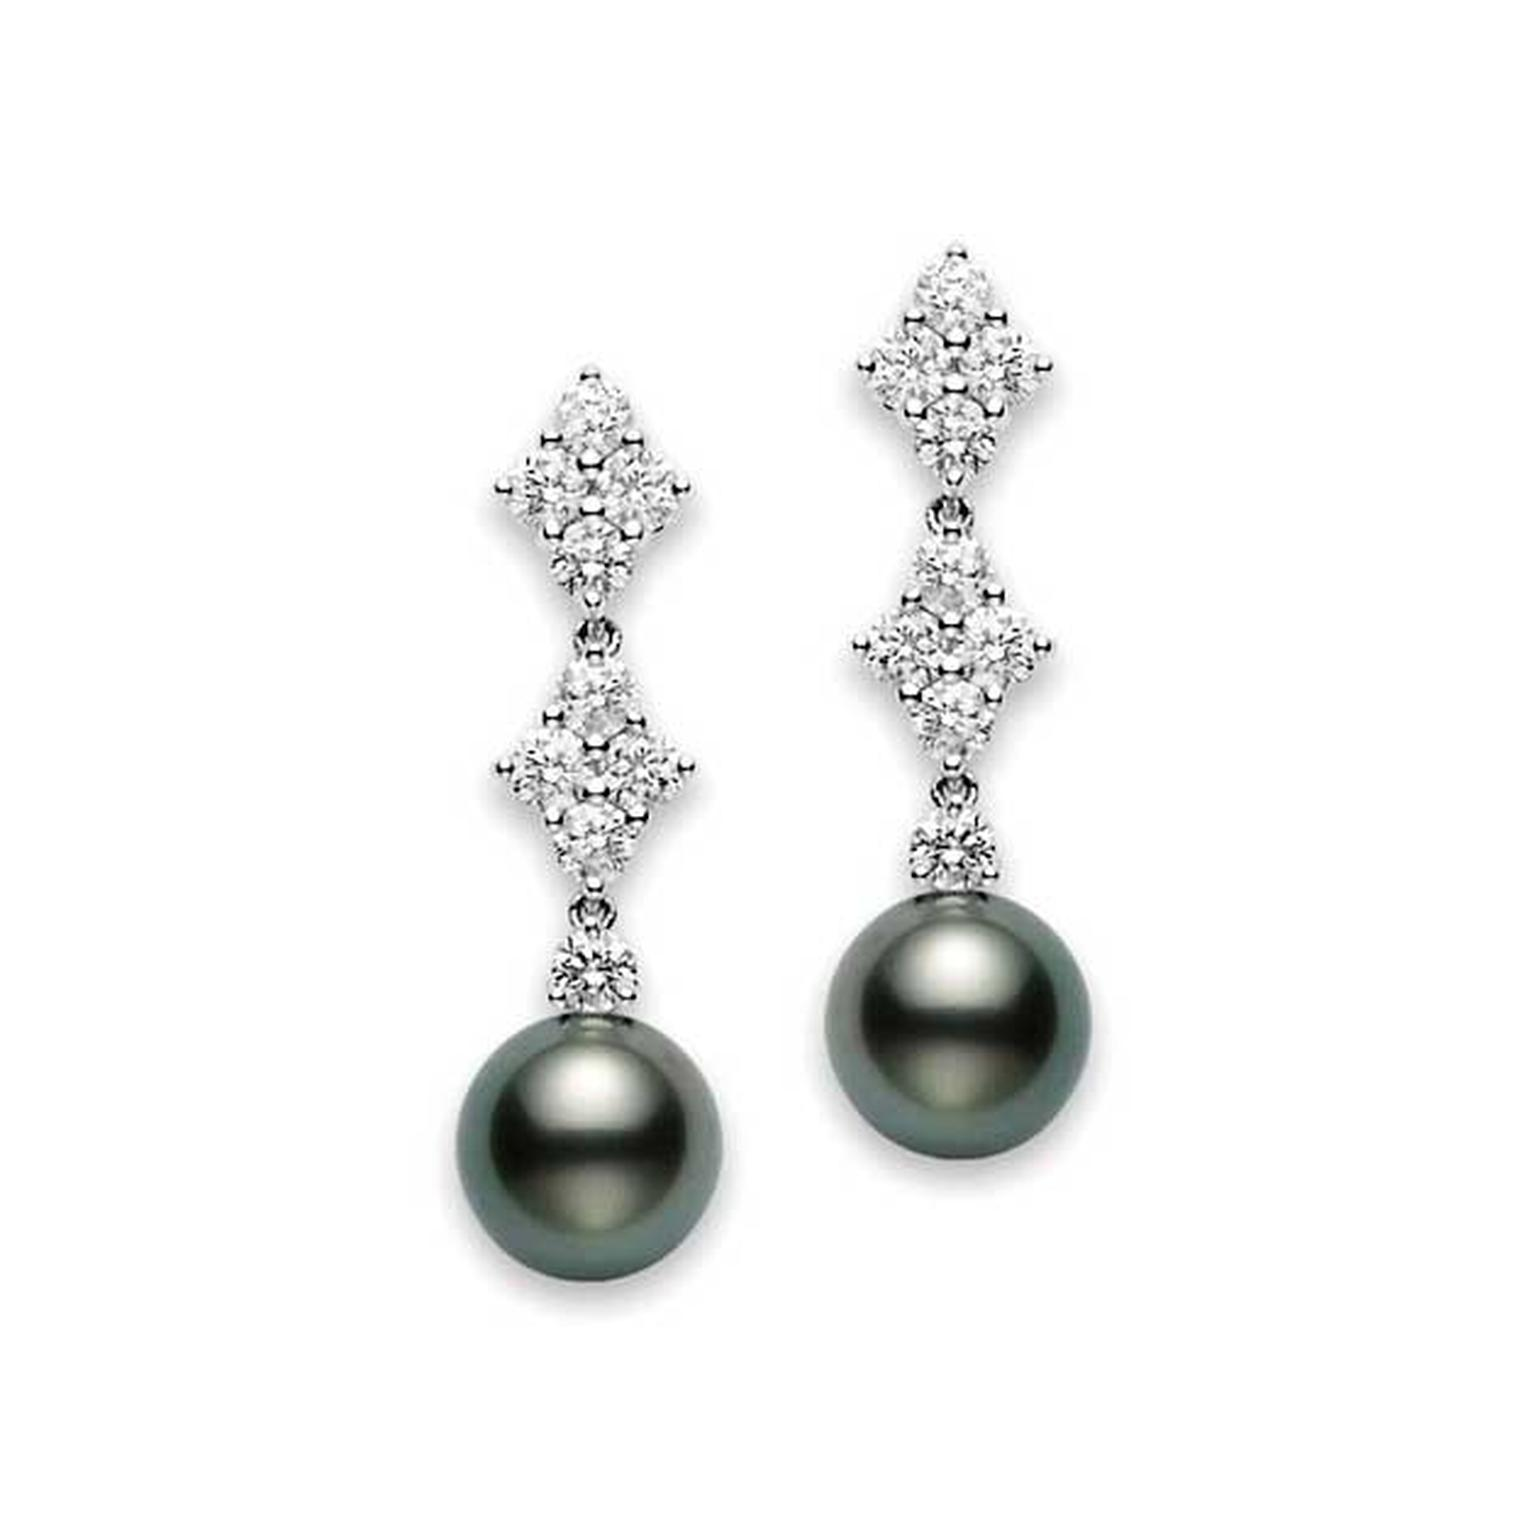 Pearl jewellery to suit your style